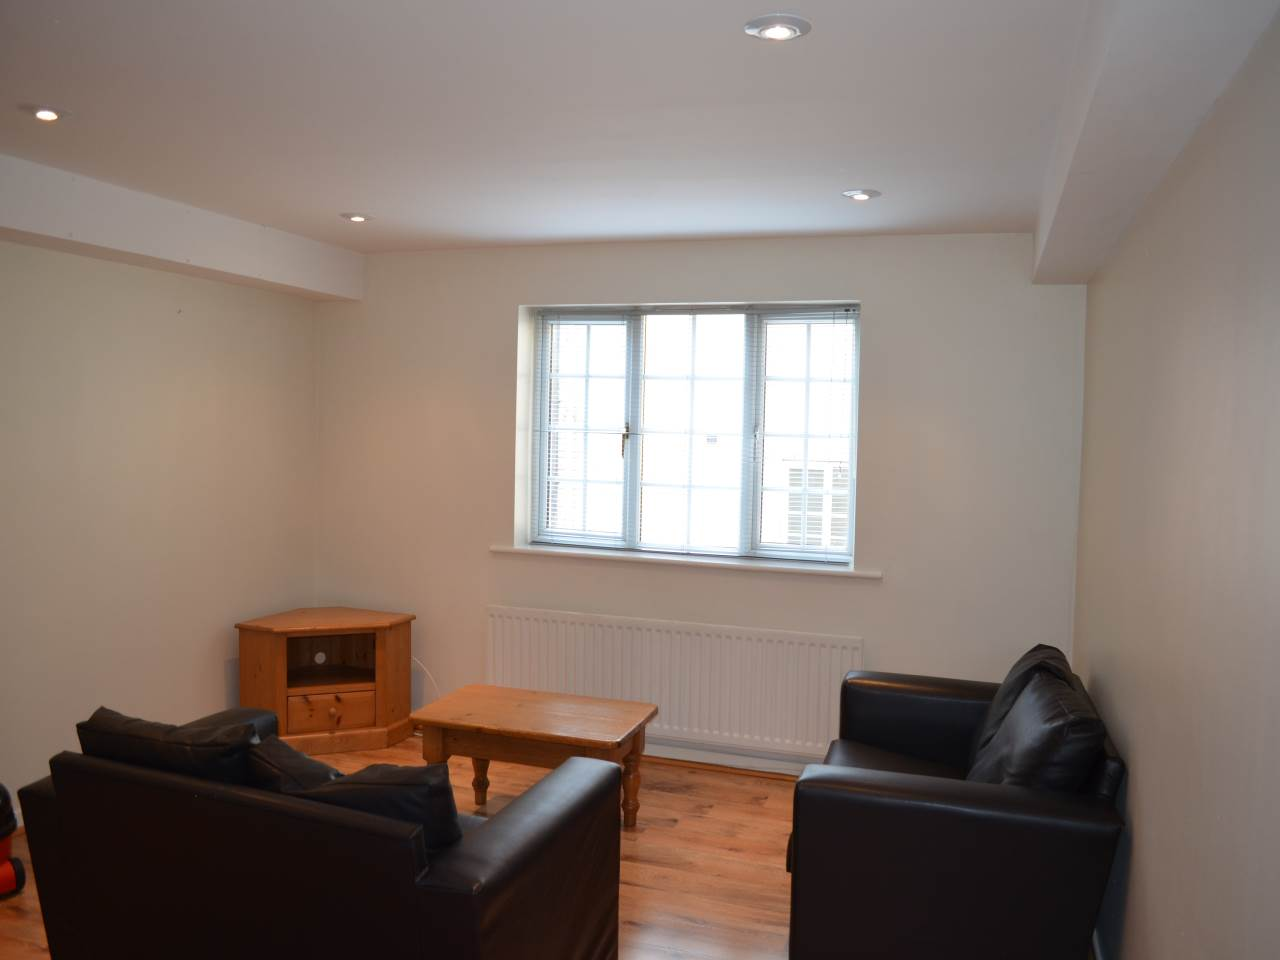 Flat 10 Thornton Court (20/21), Forth Place, City Centre